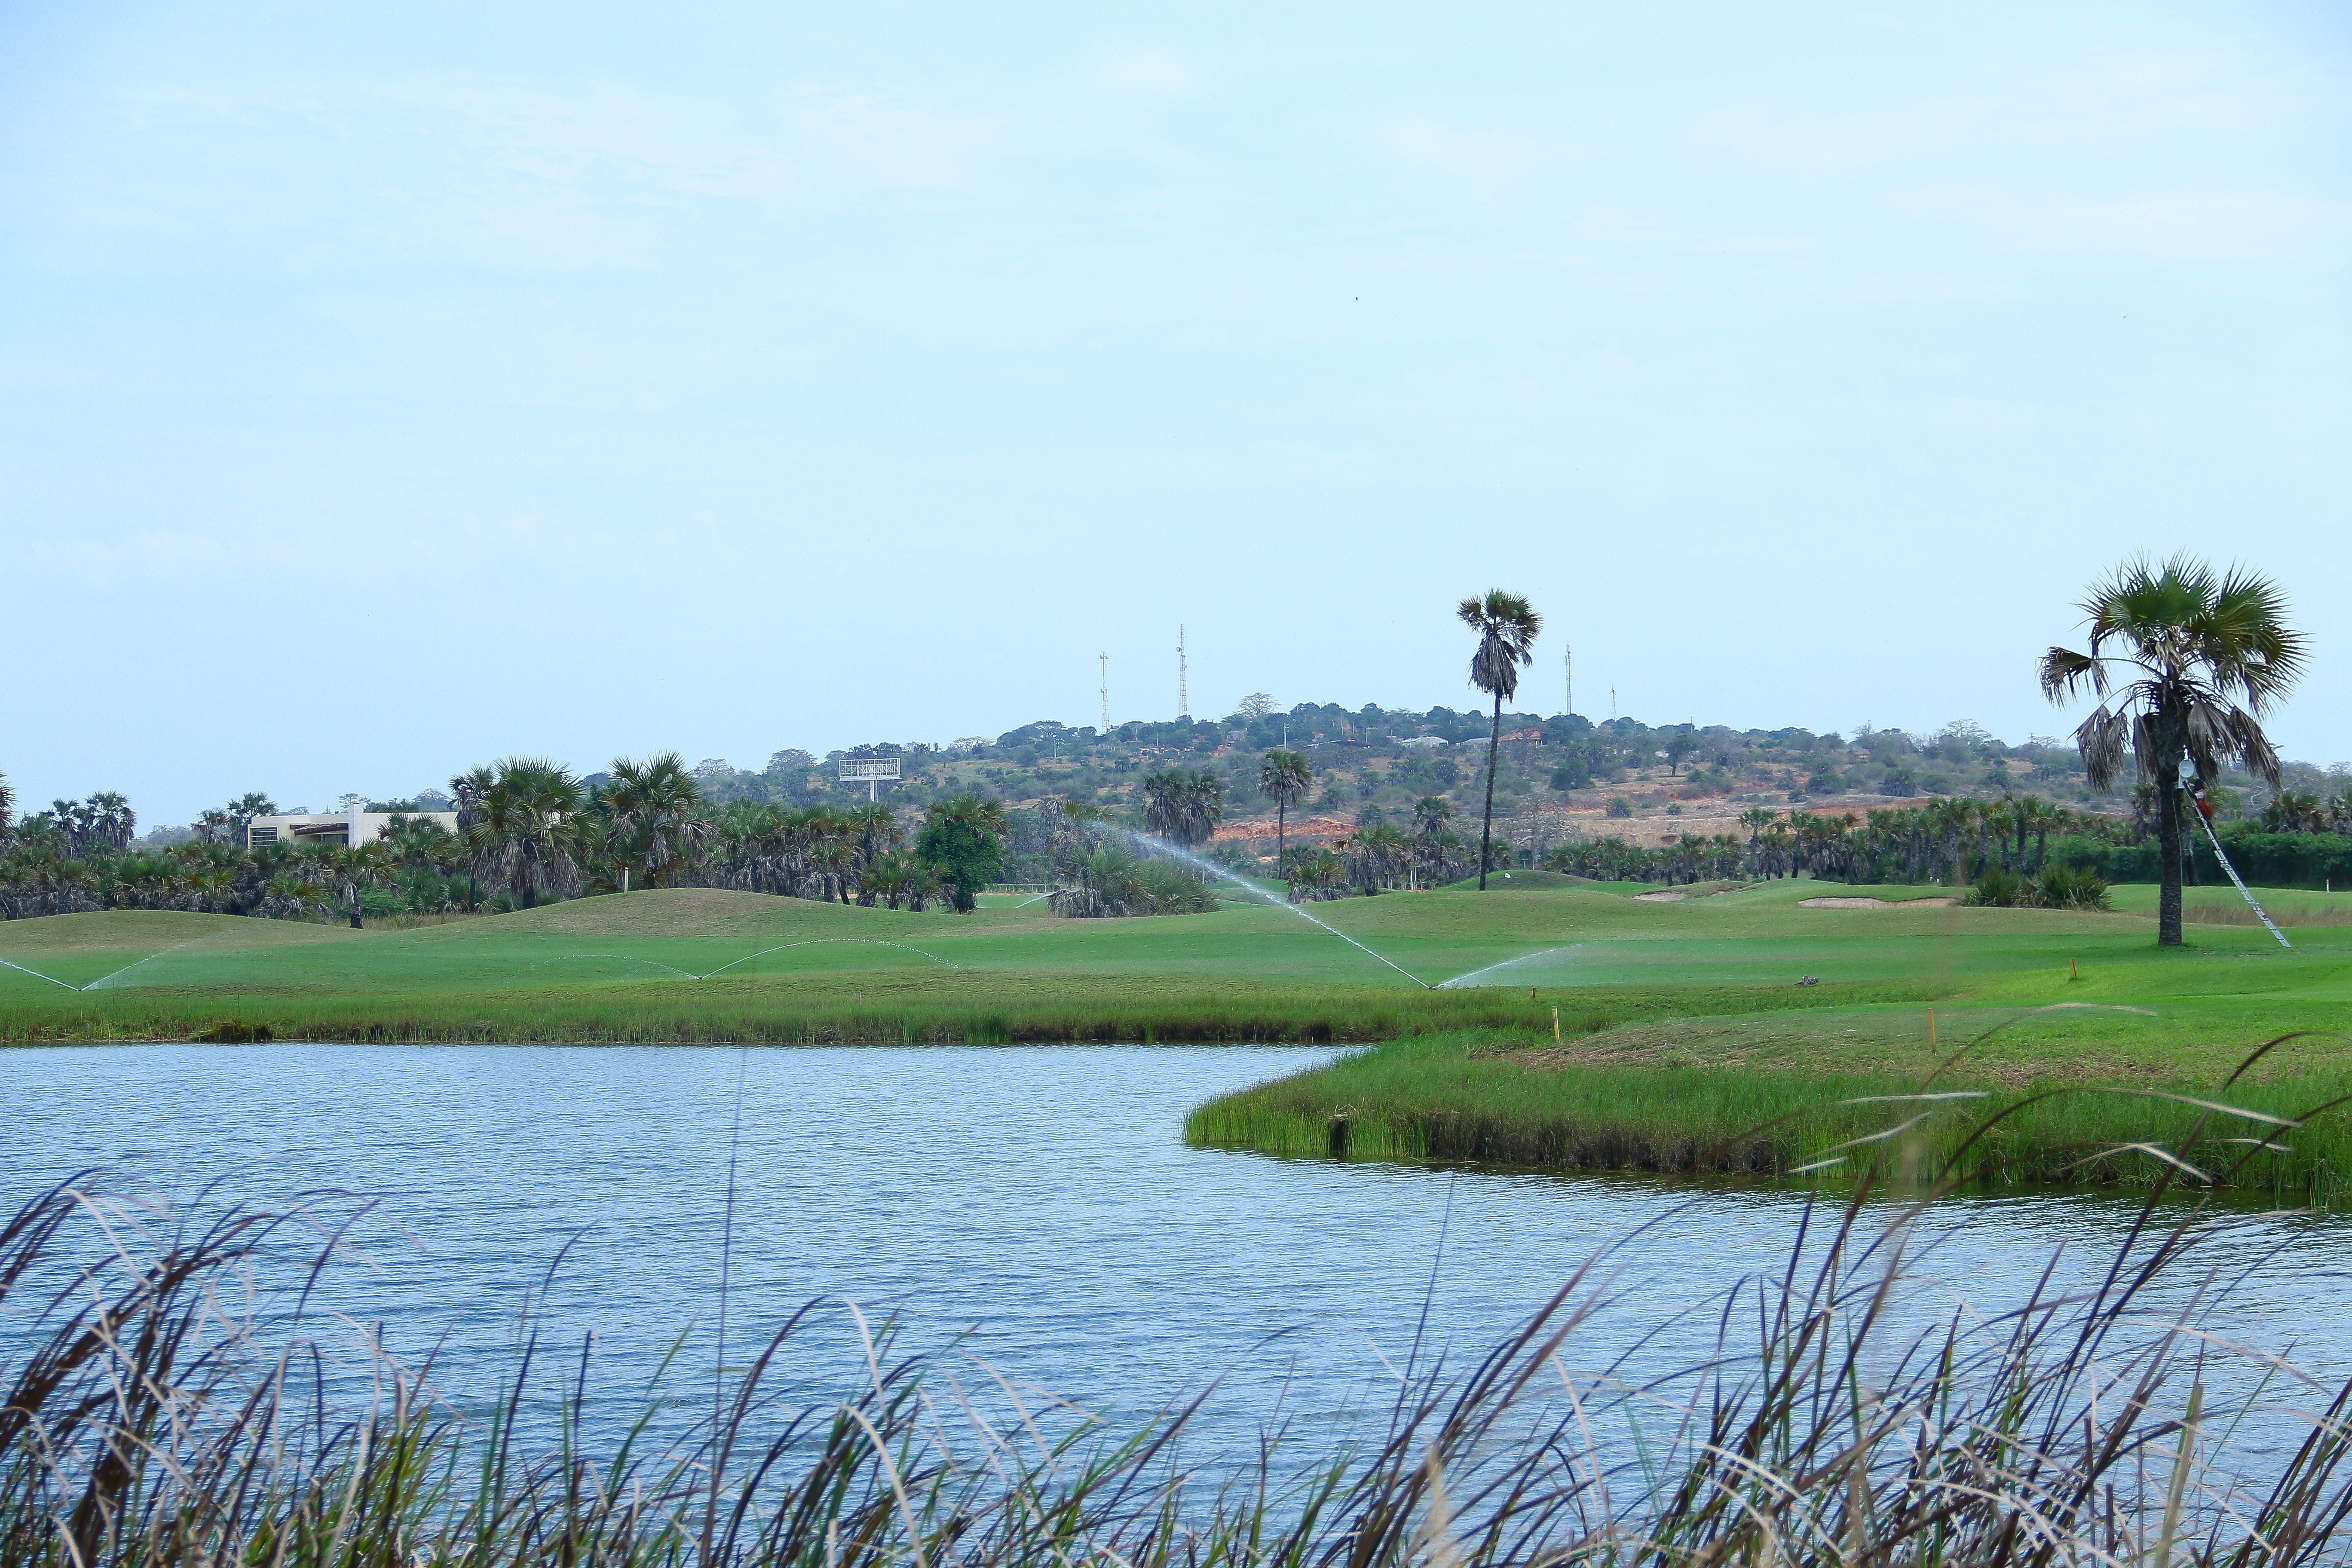 Vista Parcial Do Mangais Golf Resort  Em Luanda